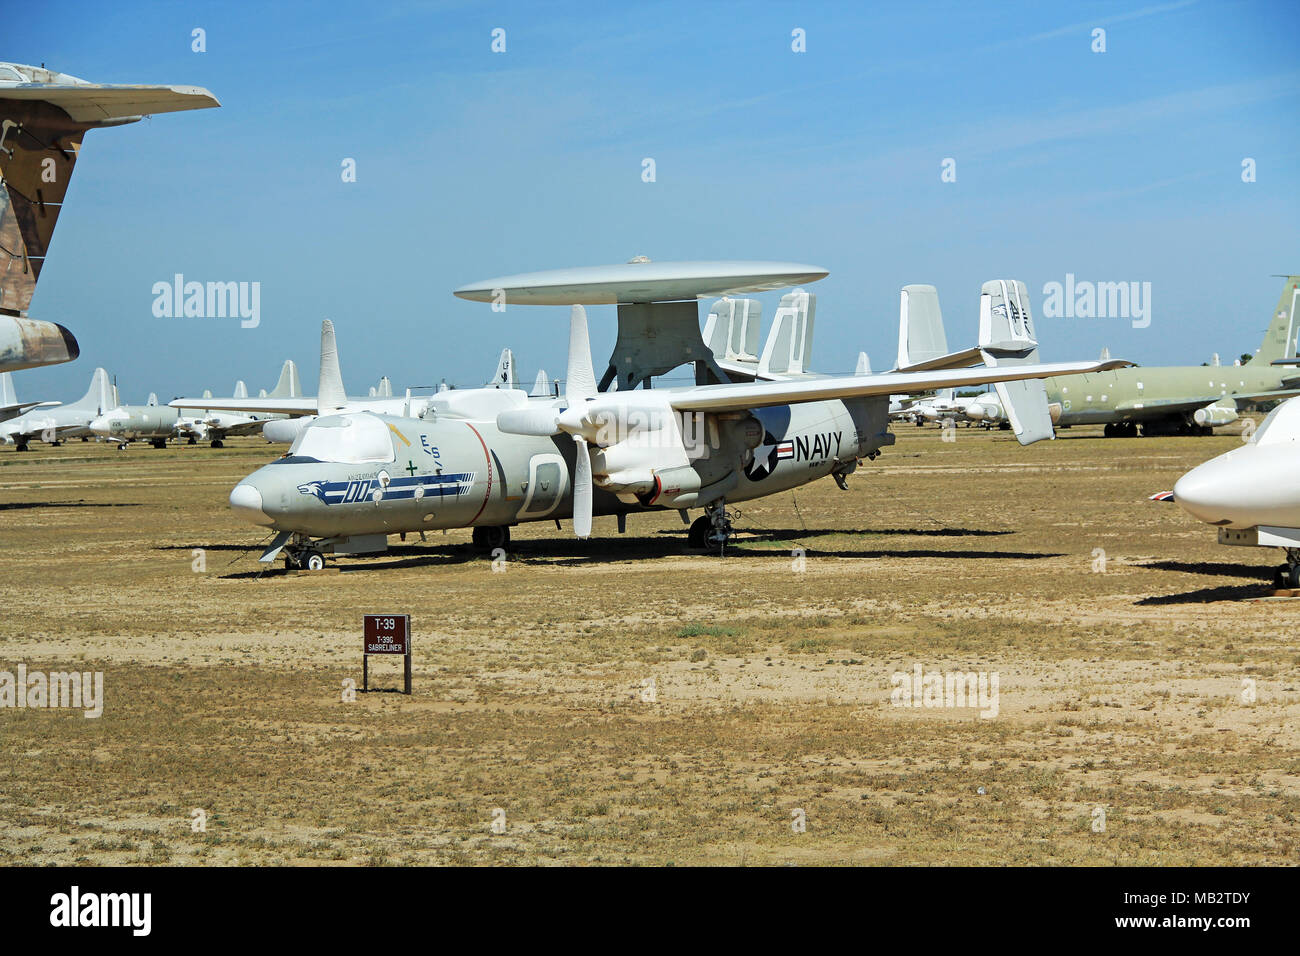 T-39G Sabreliner Jet in Pima Air and Space Museum - Stock Image